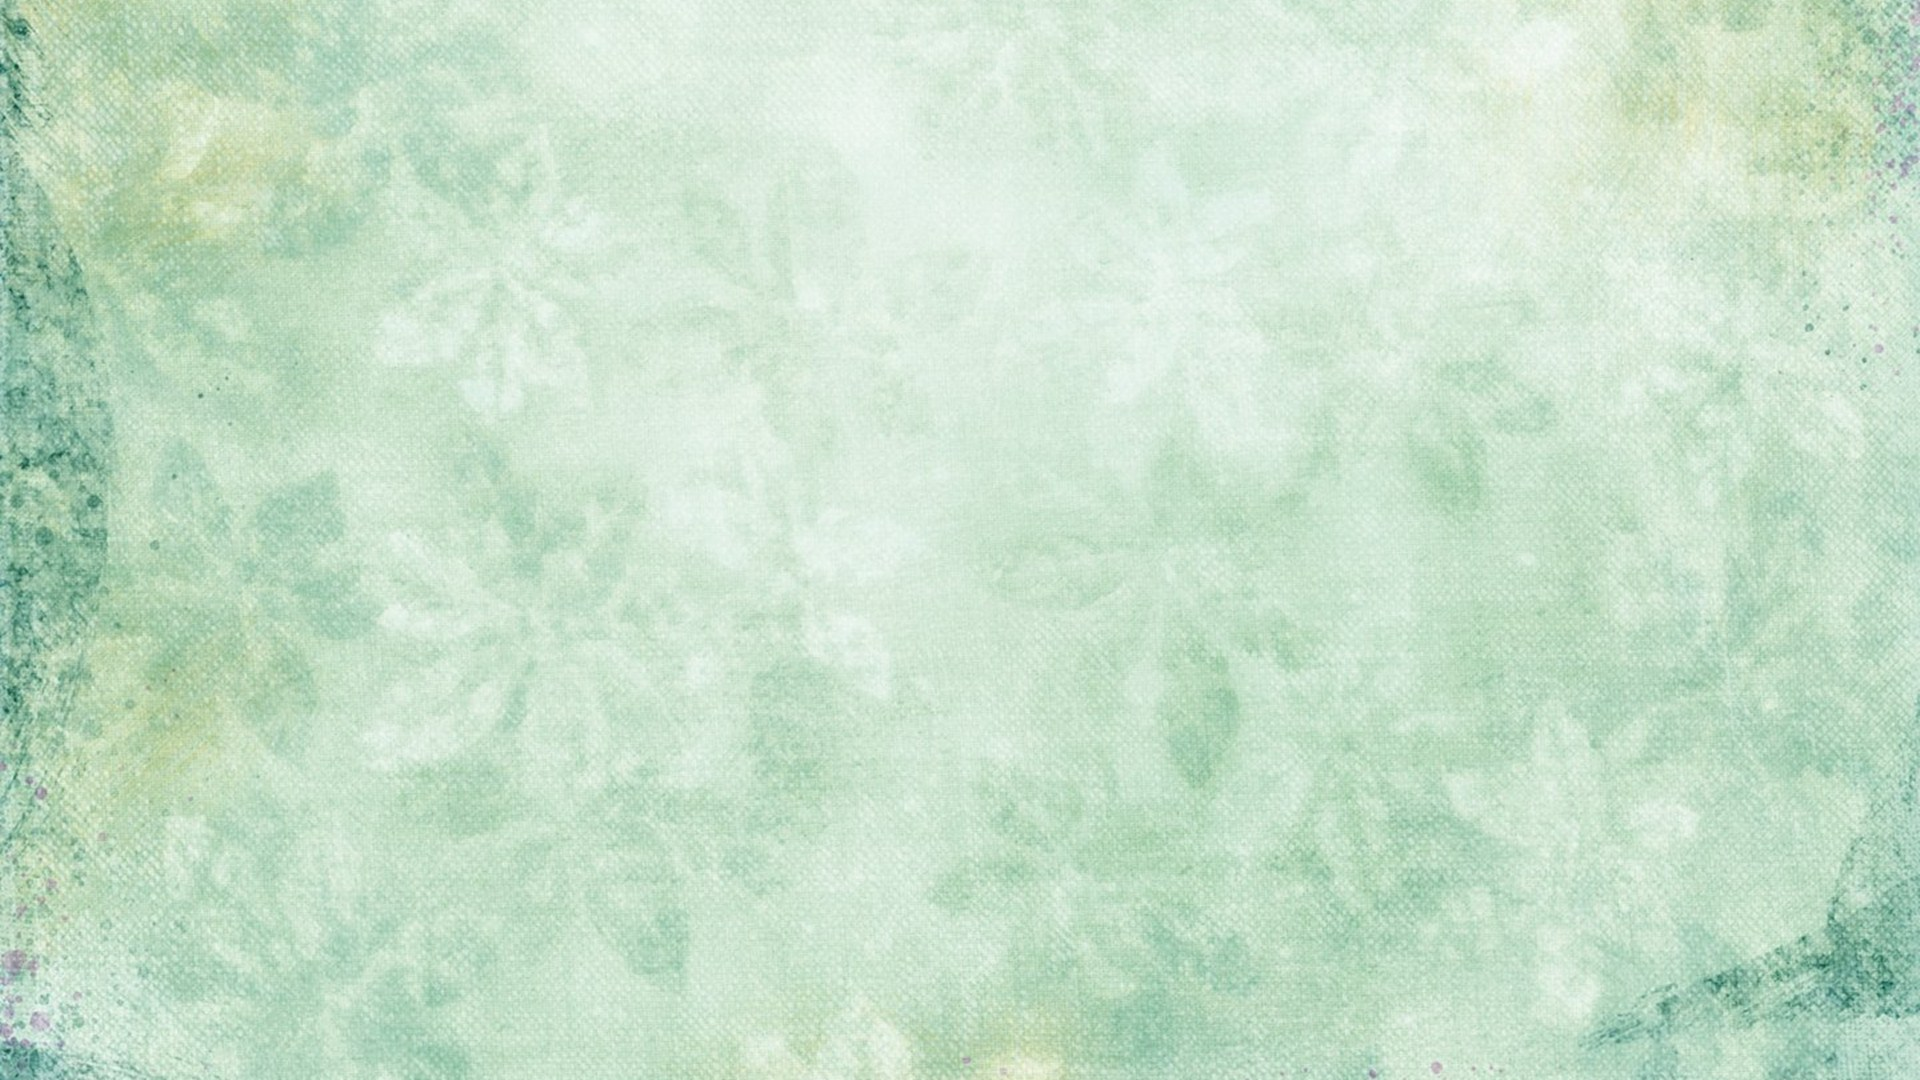 Green Vintage Background Wallpaper Grey With Green Background 1920x1080 Wallpaper Teahub Io